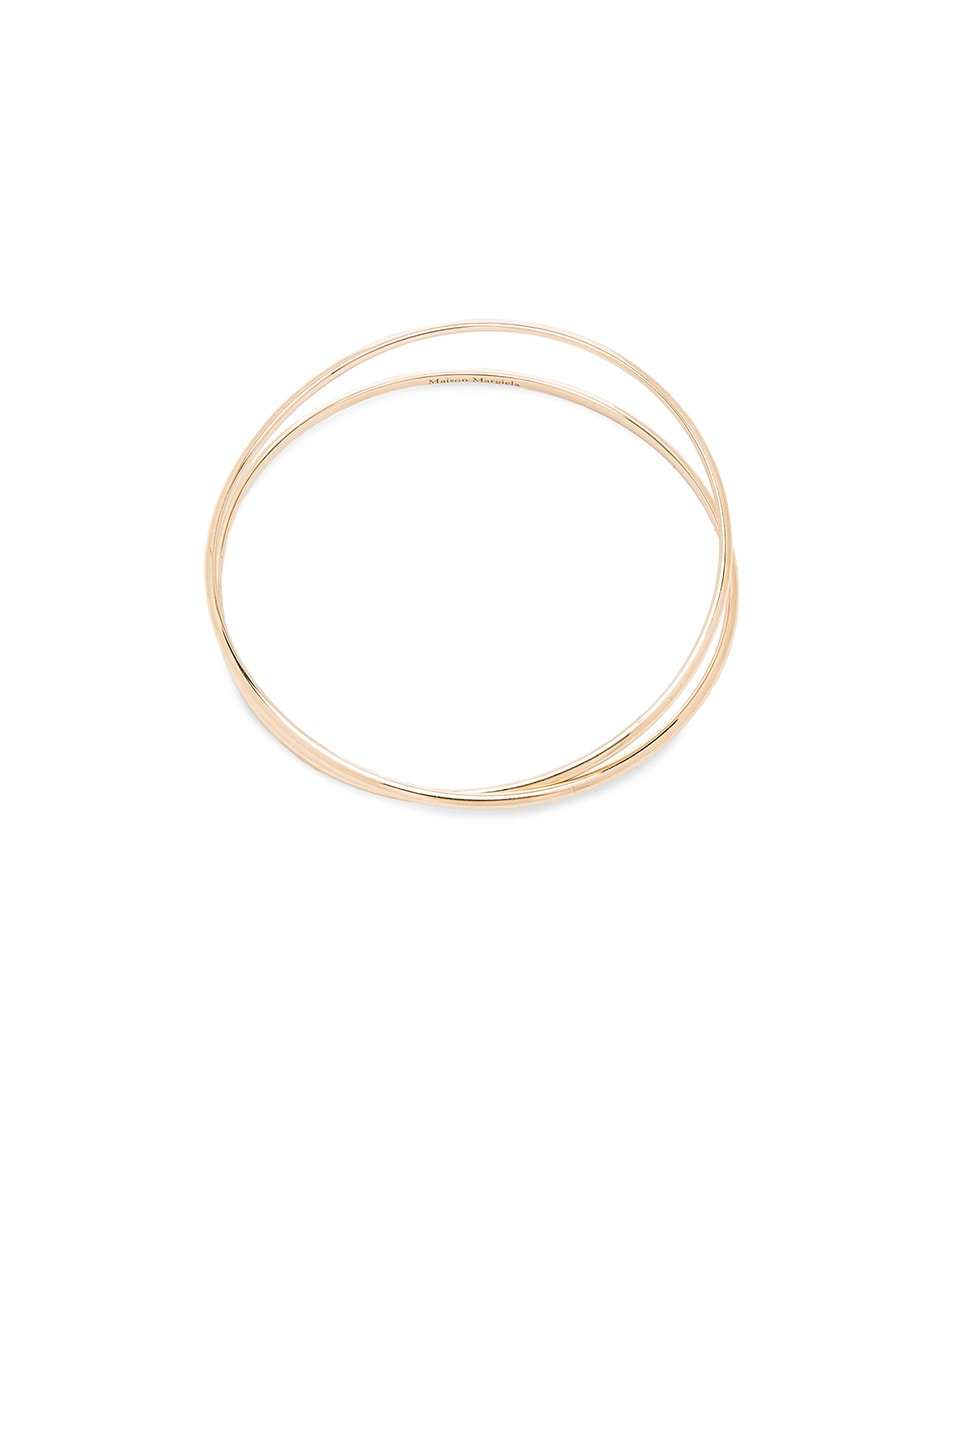 Image 1 of Maison Margiela Fine Twisted Bracelet in 18k Yellow Gold